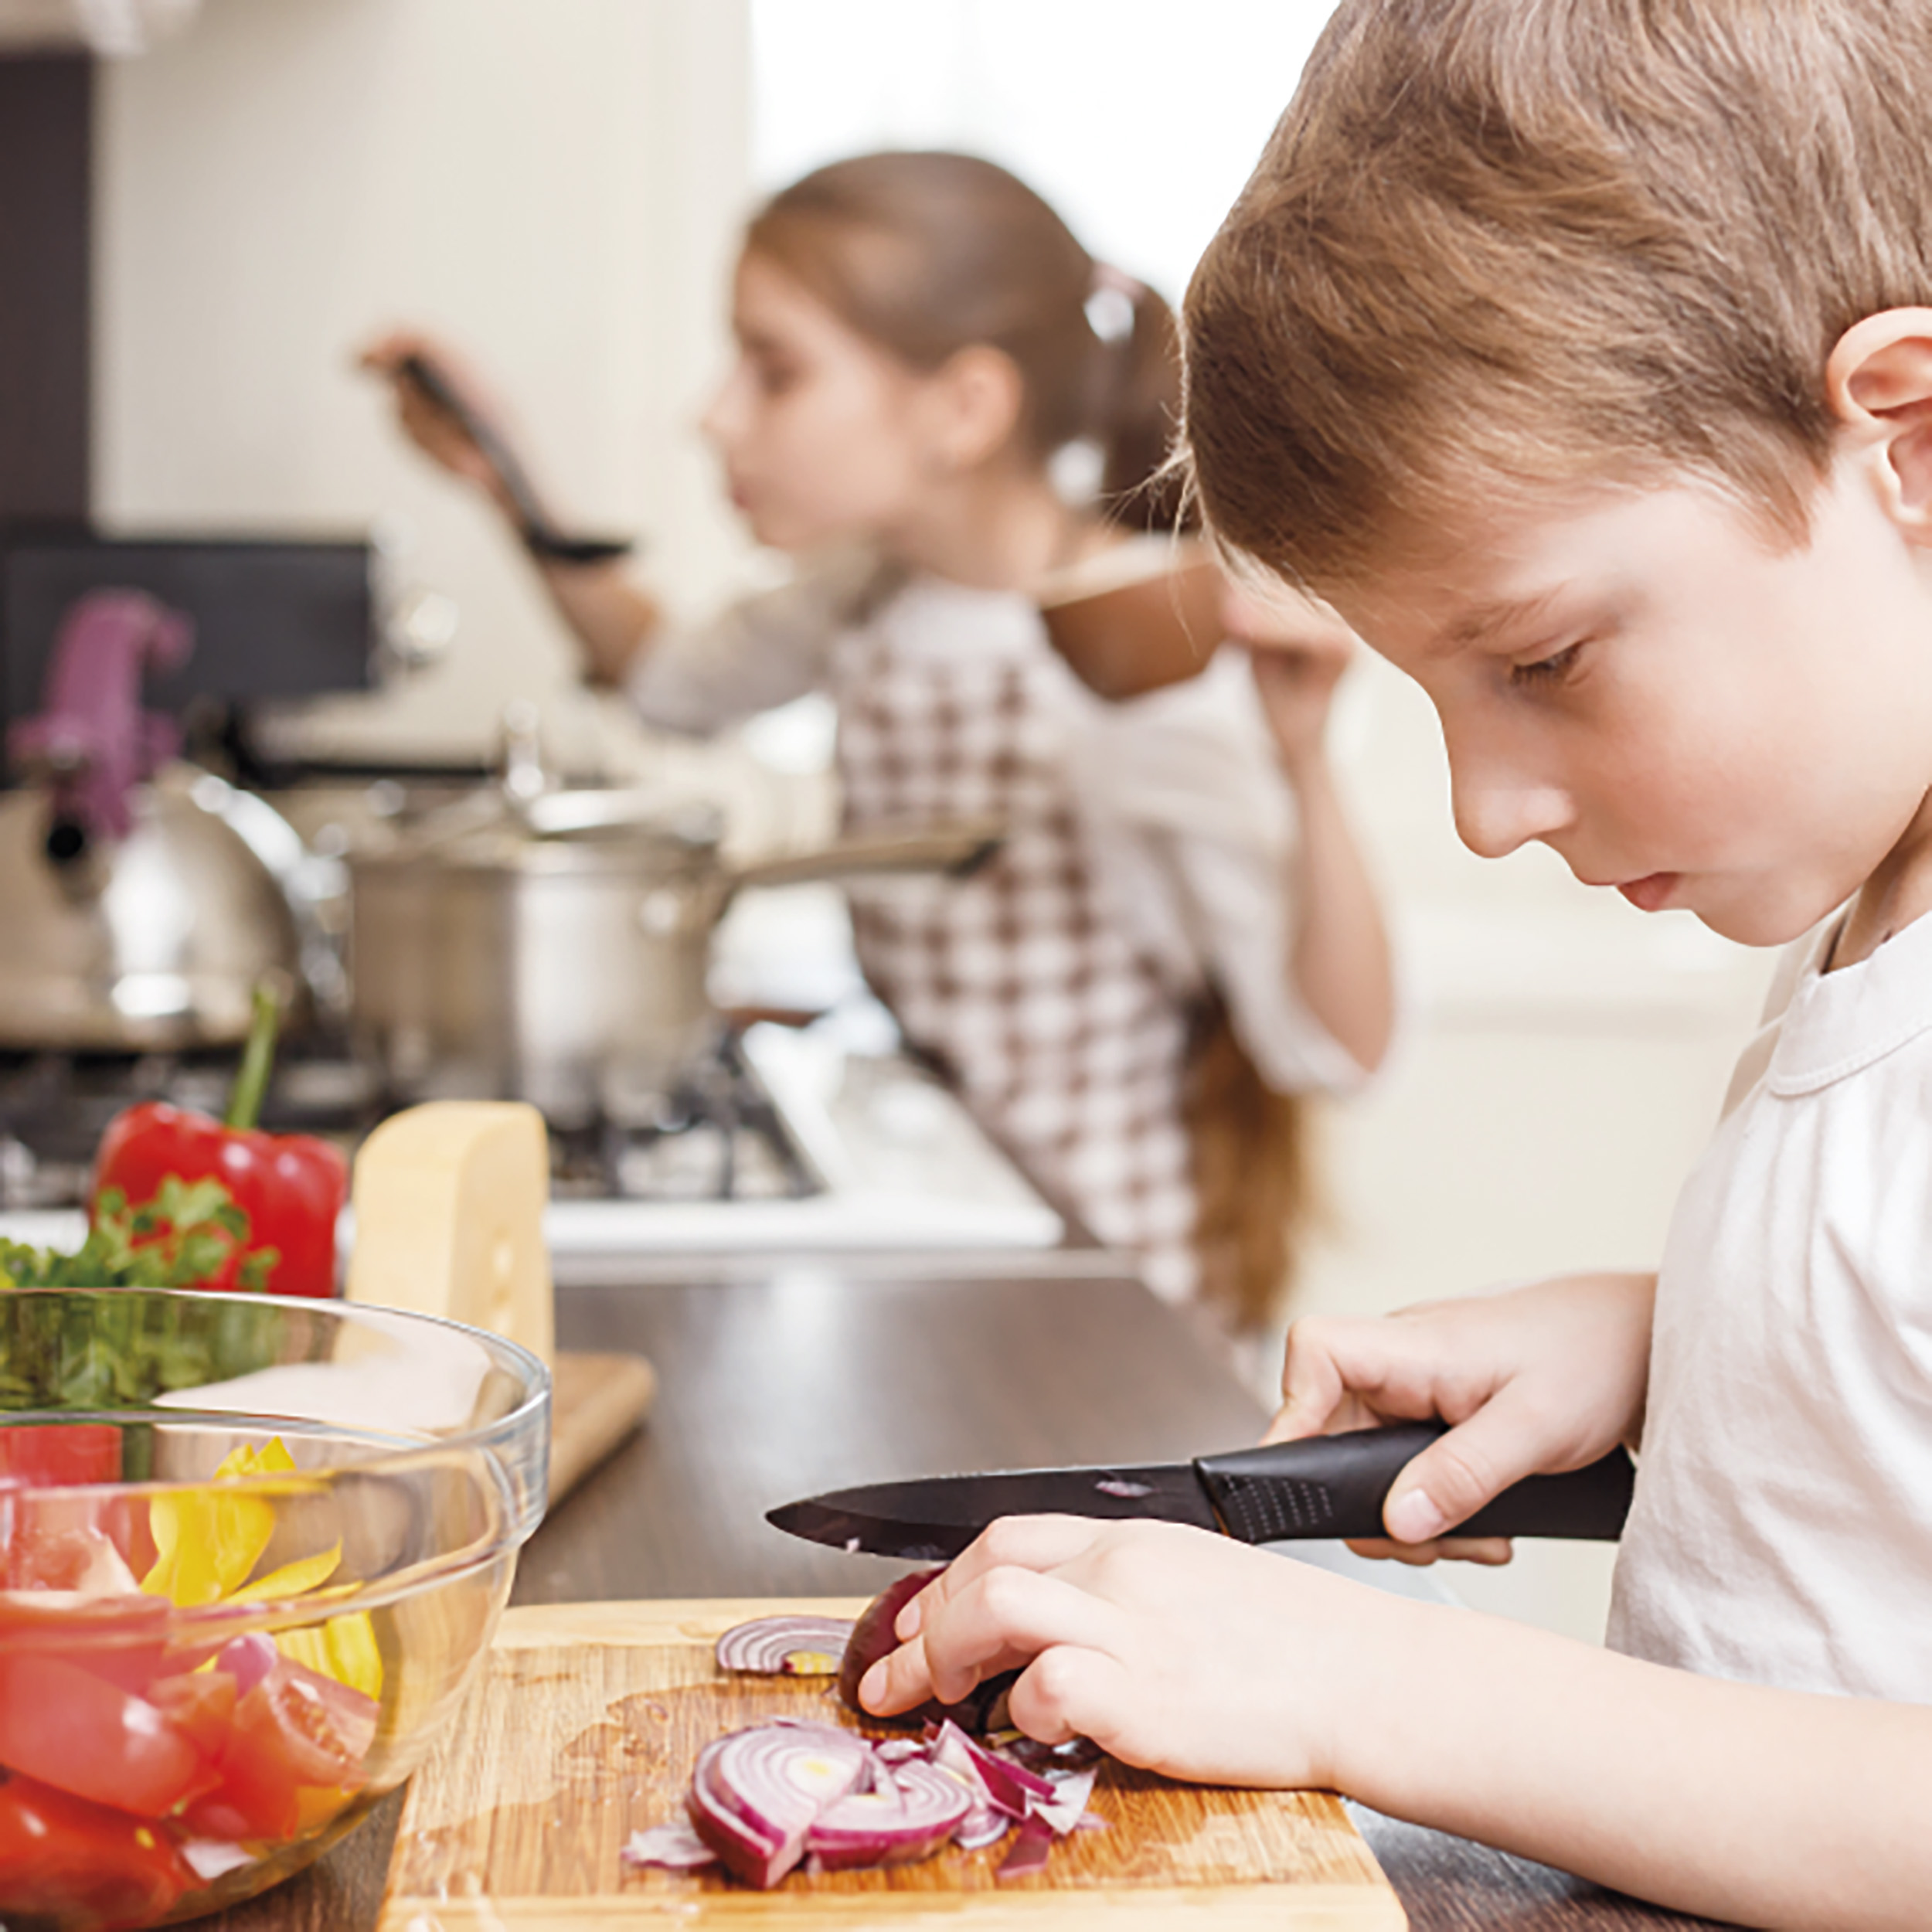 Cooking for children 6-12 years